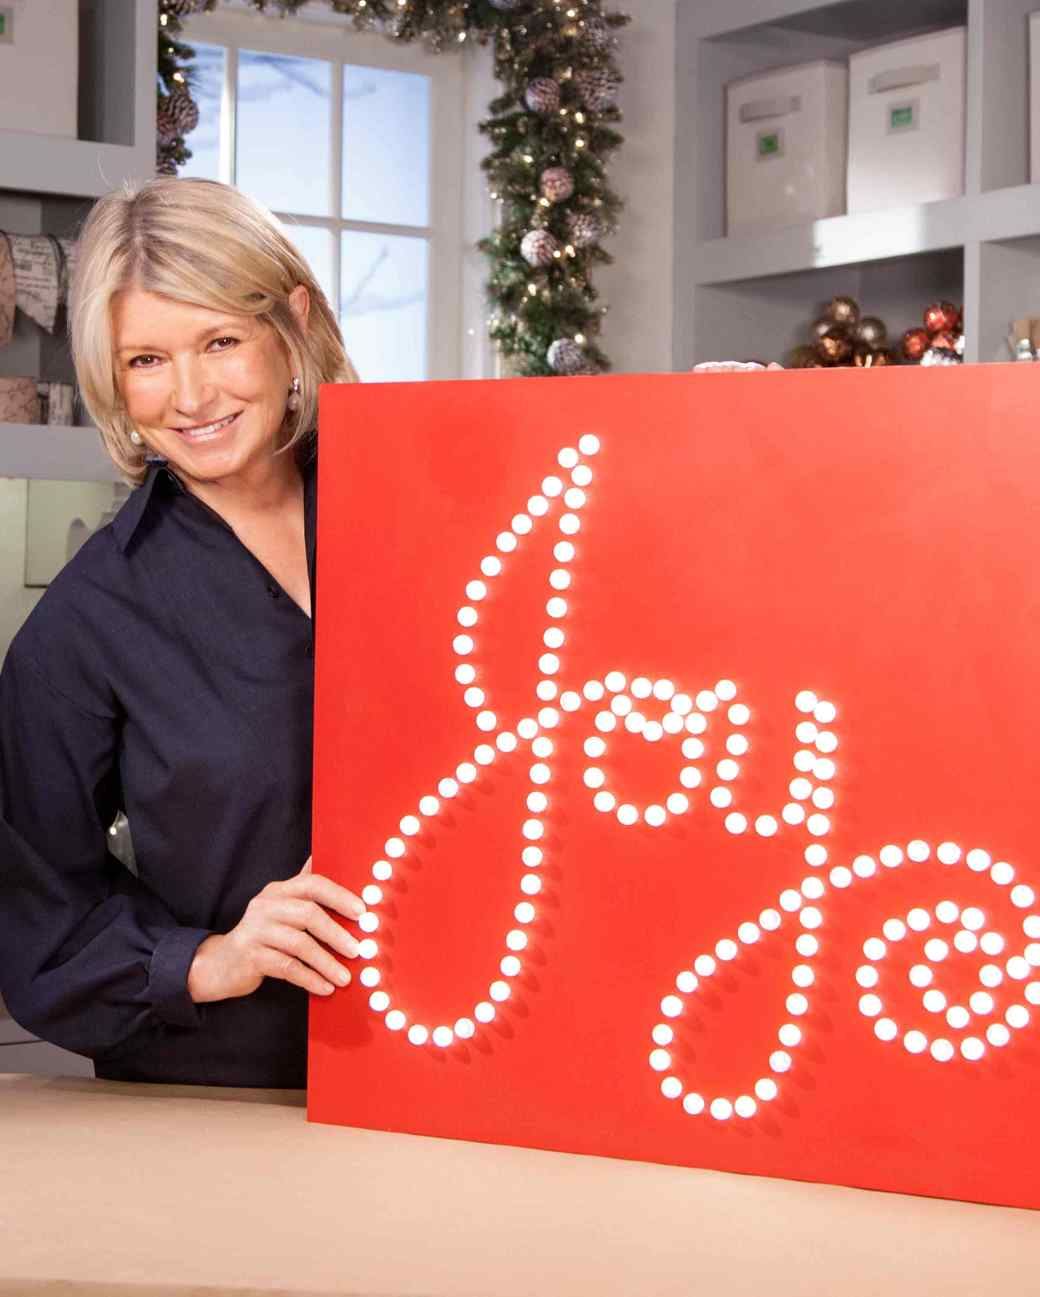 joyful_lighted_holiday_sign.jpg